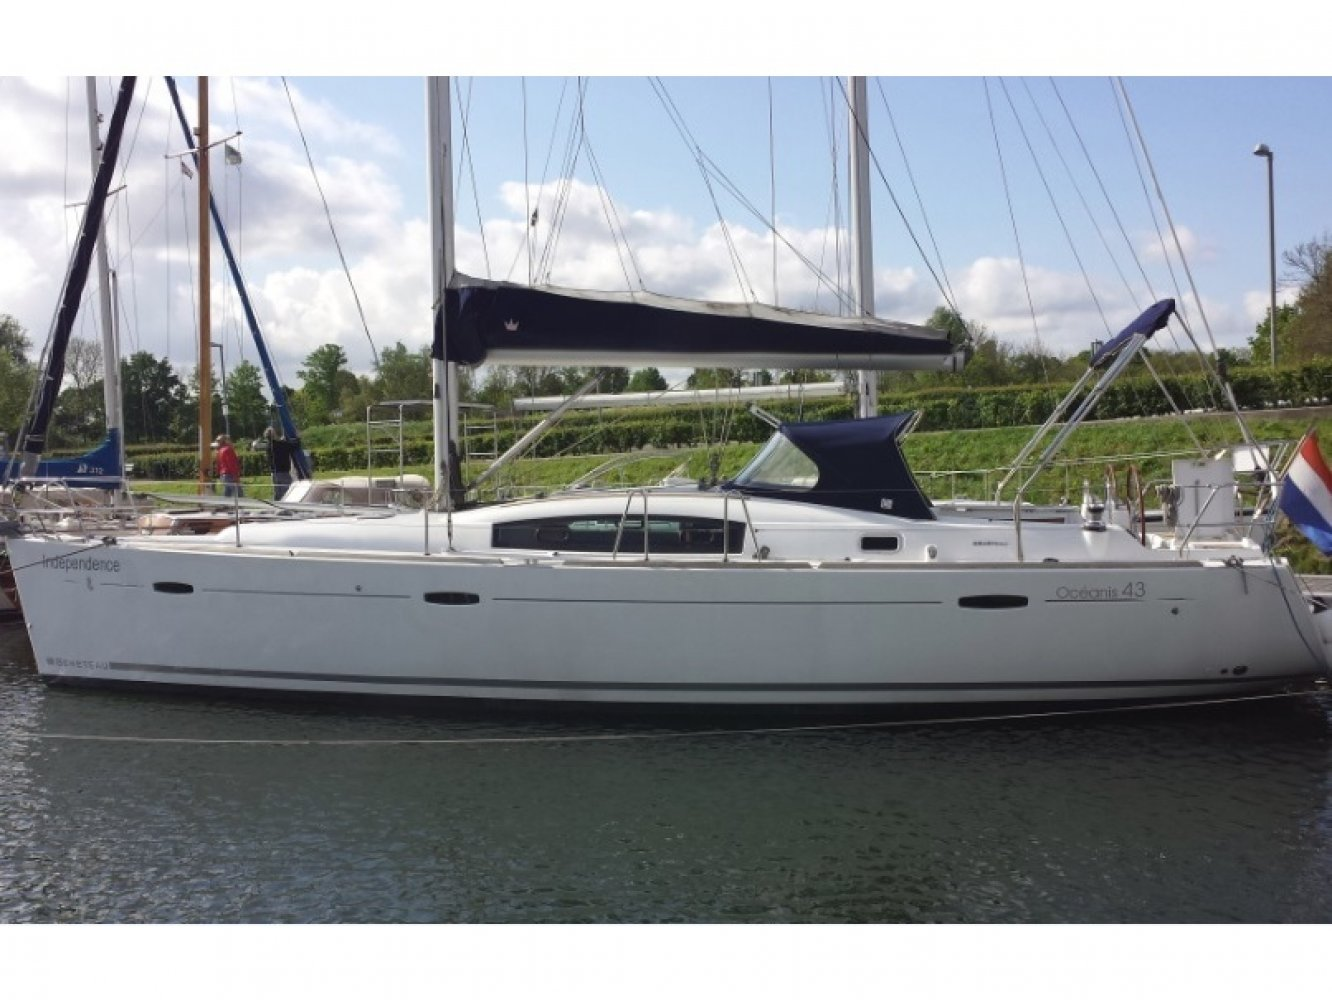 Beneteau Oceanis 43 sailboat for sale | White Whale Yachtbrokers